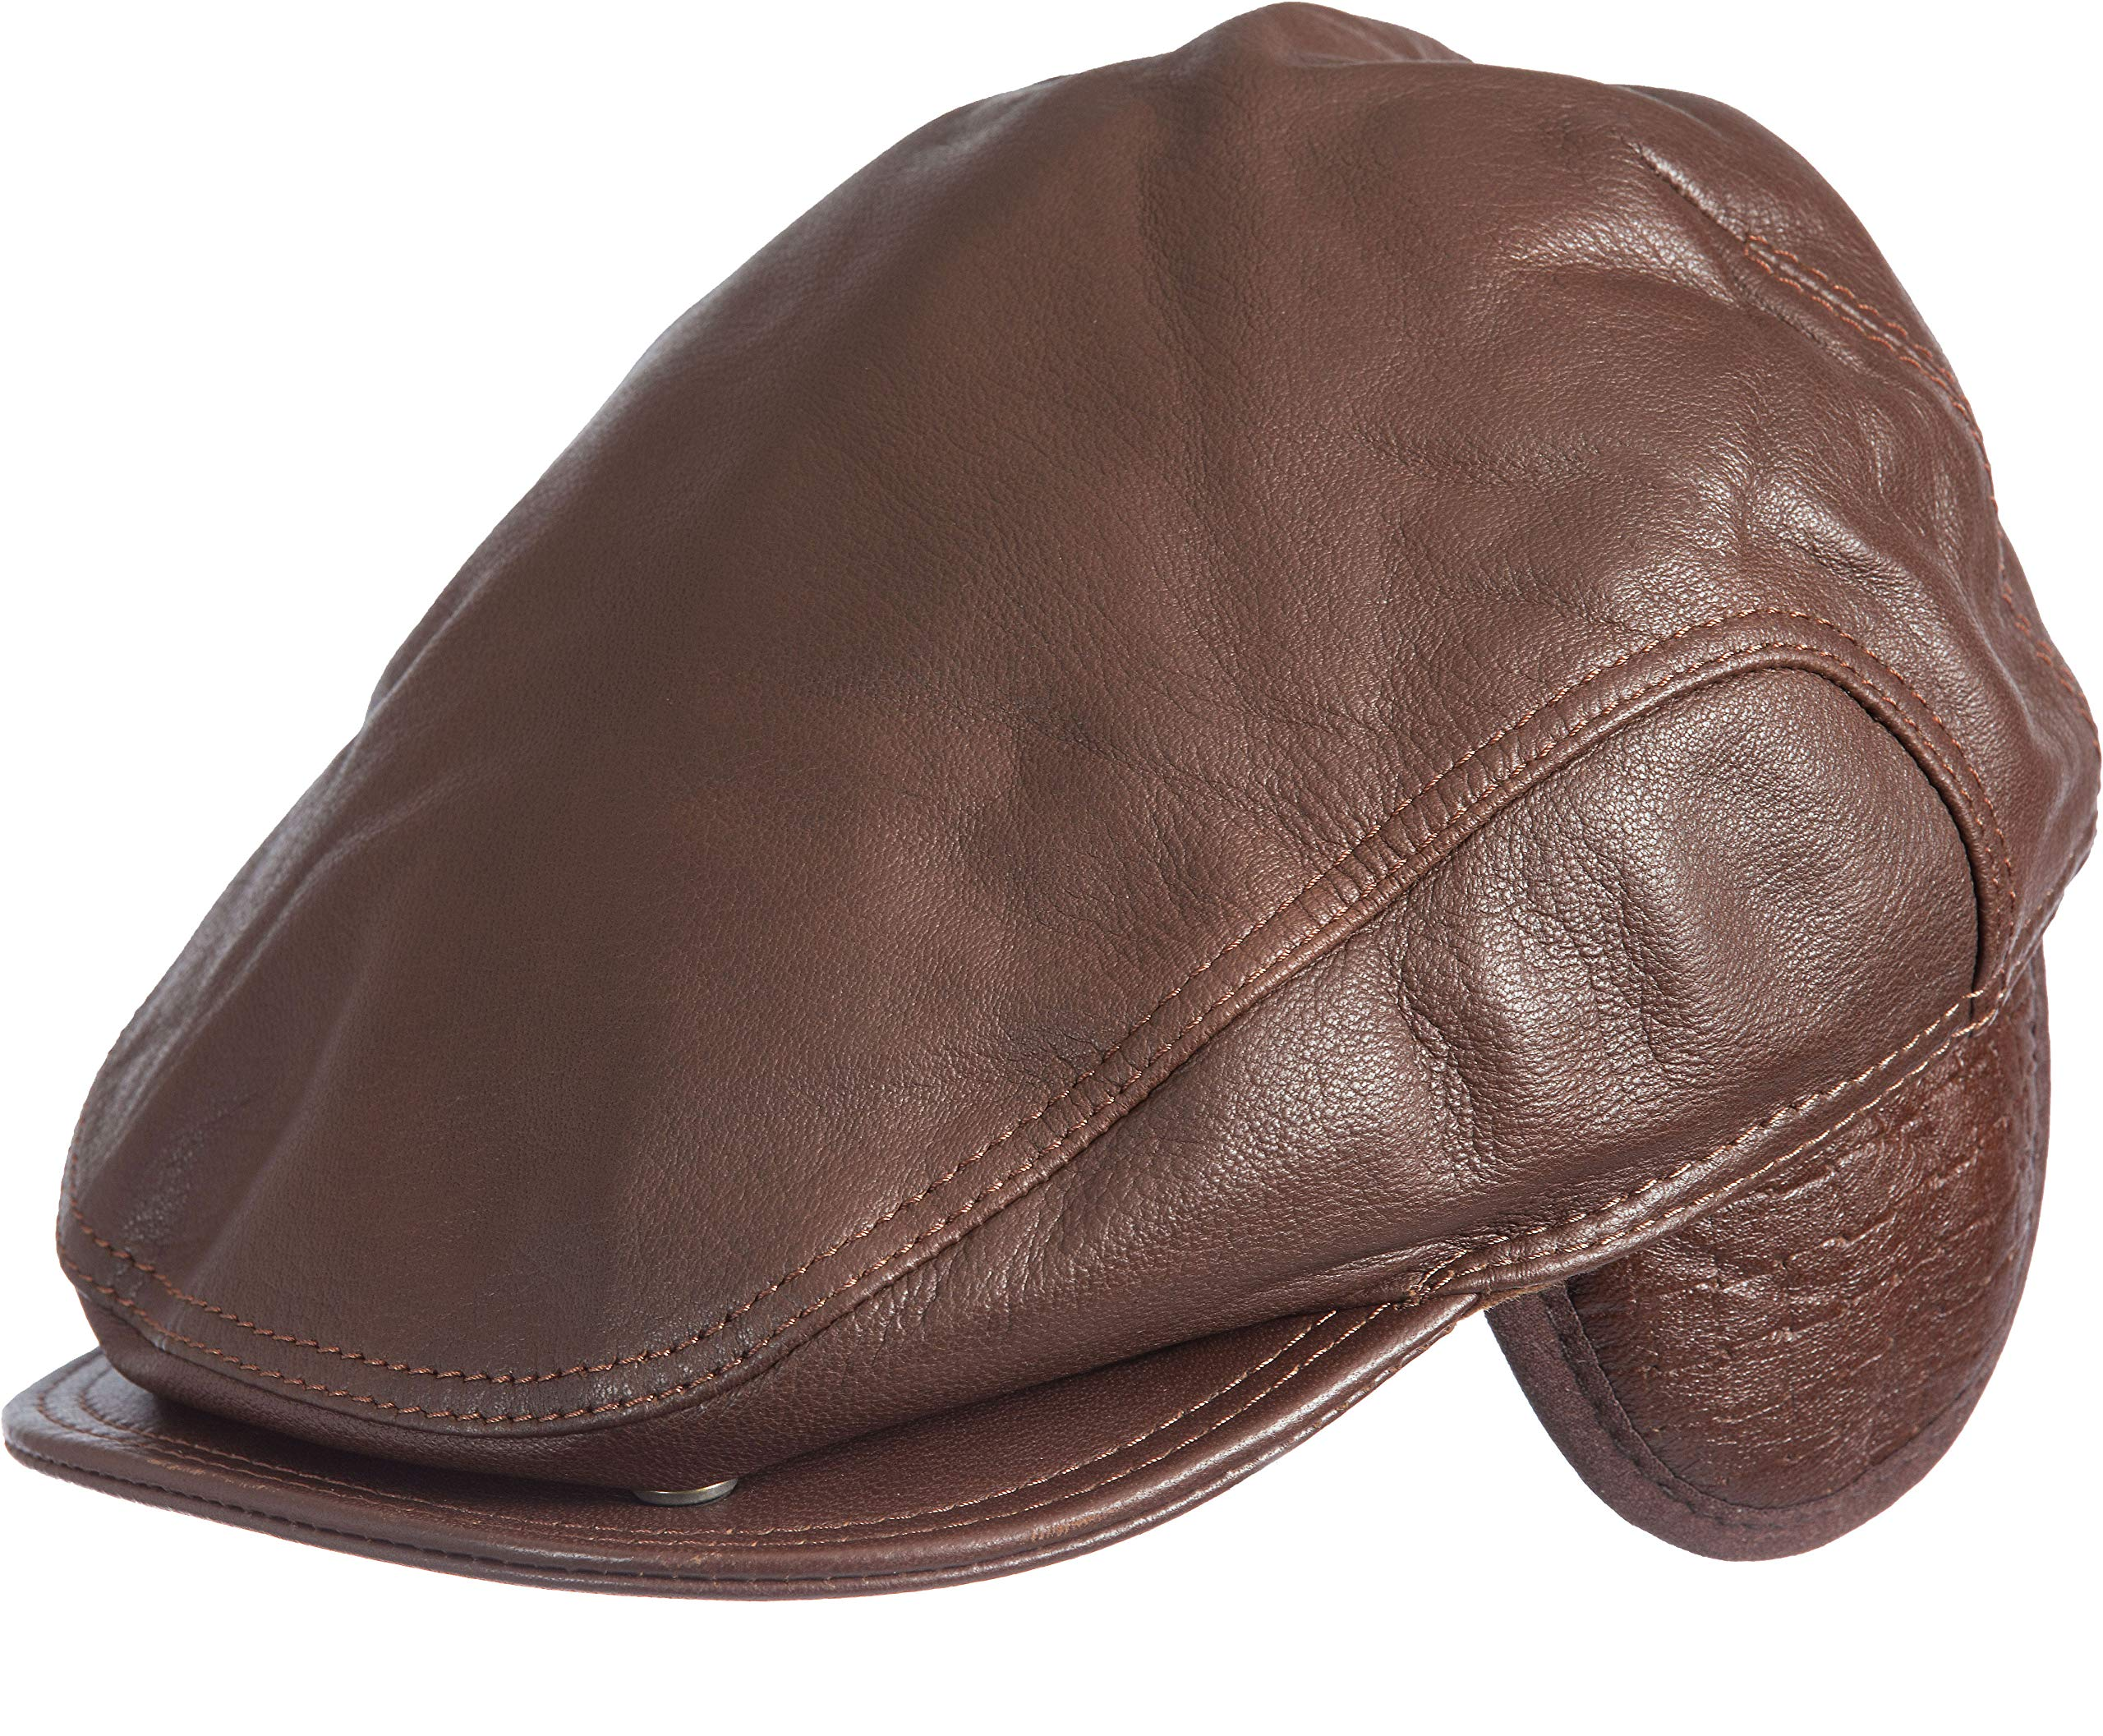 Allen Leather Ivy Cap with Shearling Earflaps Camel